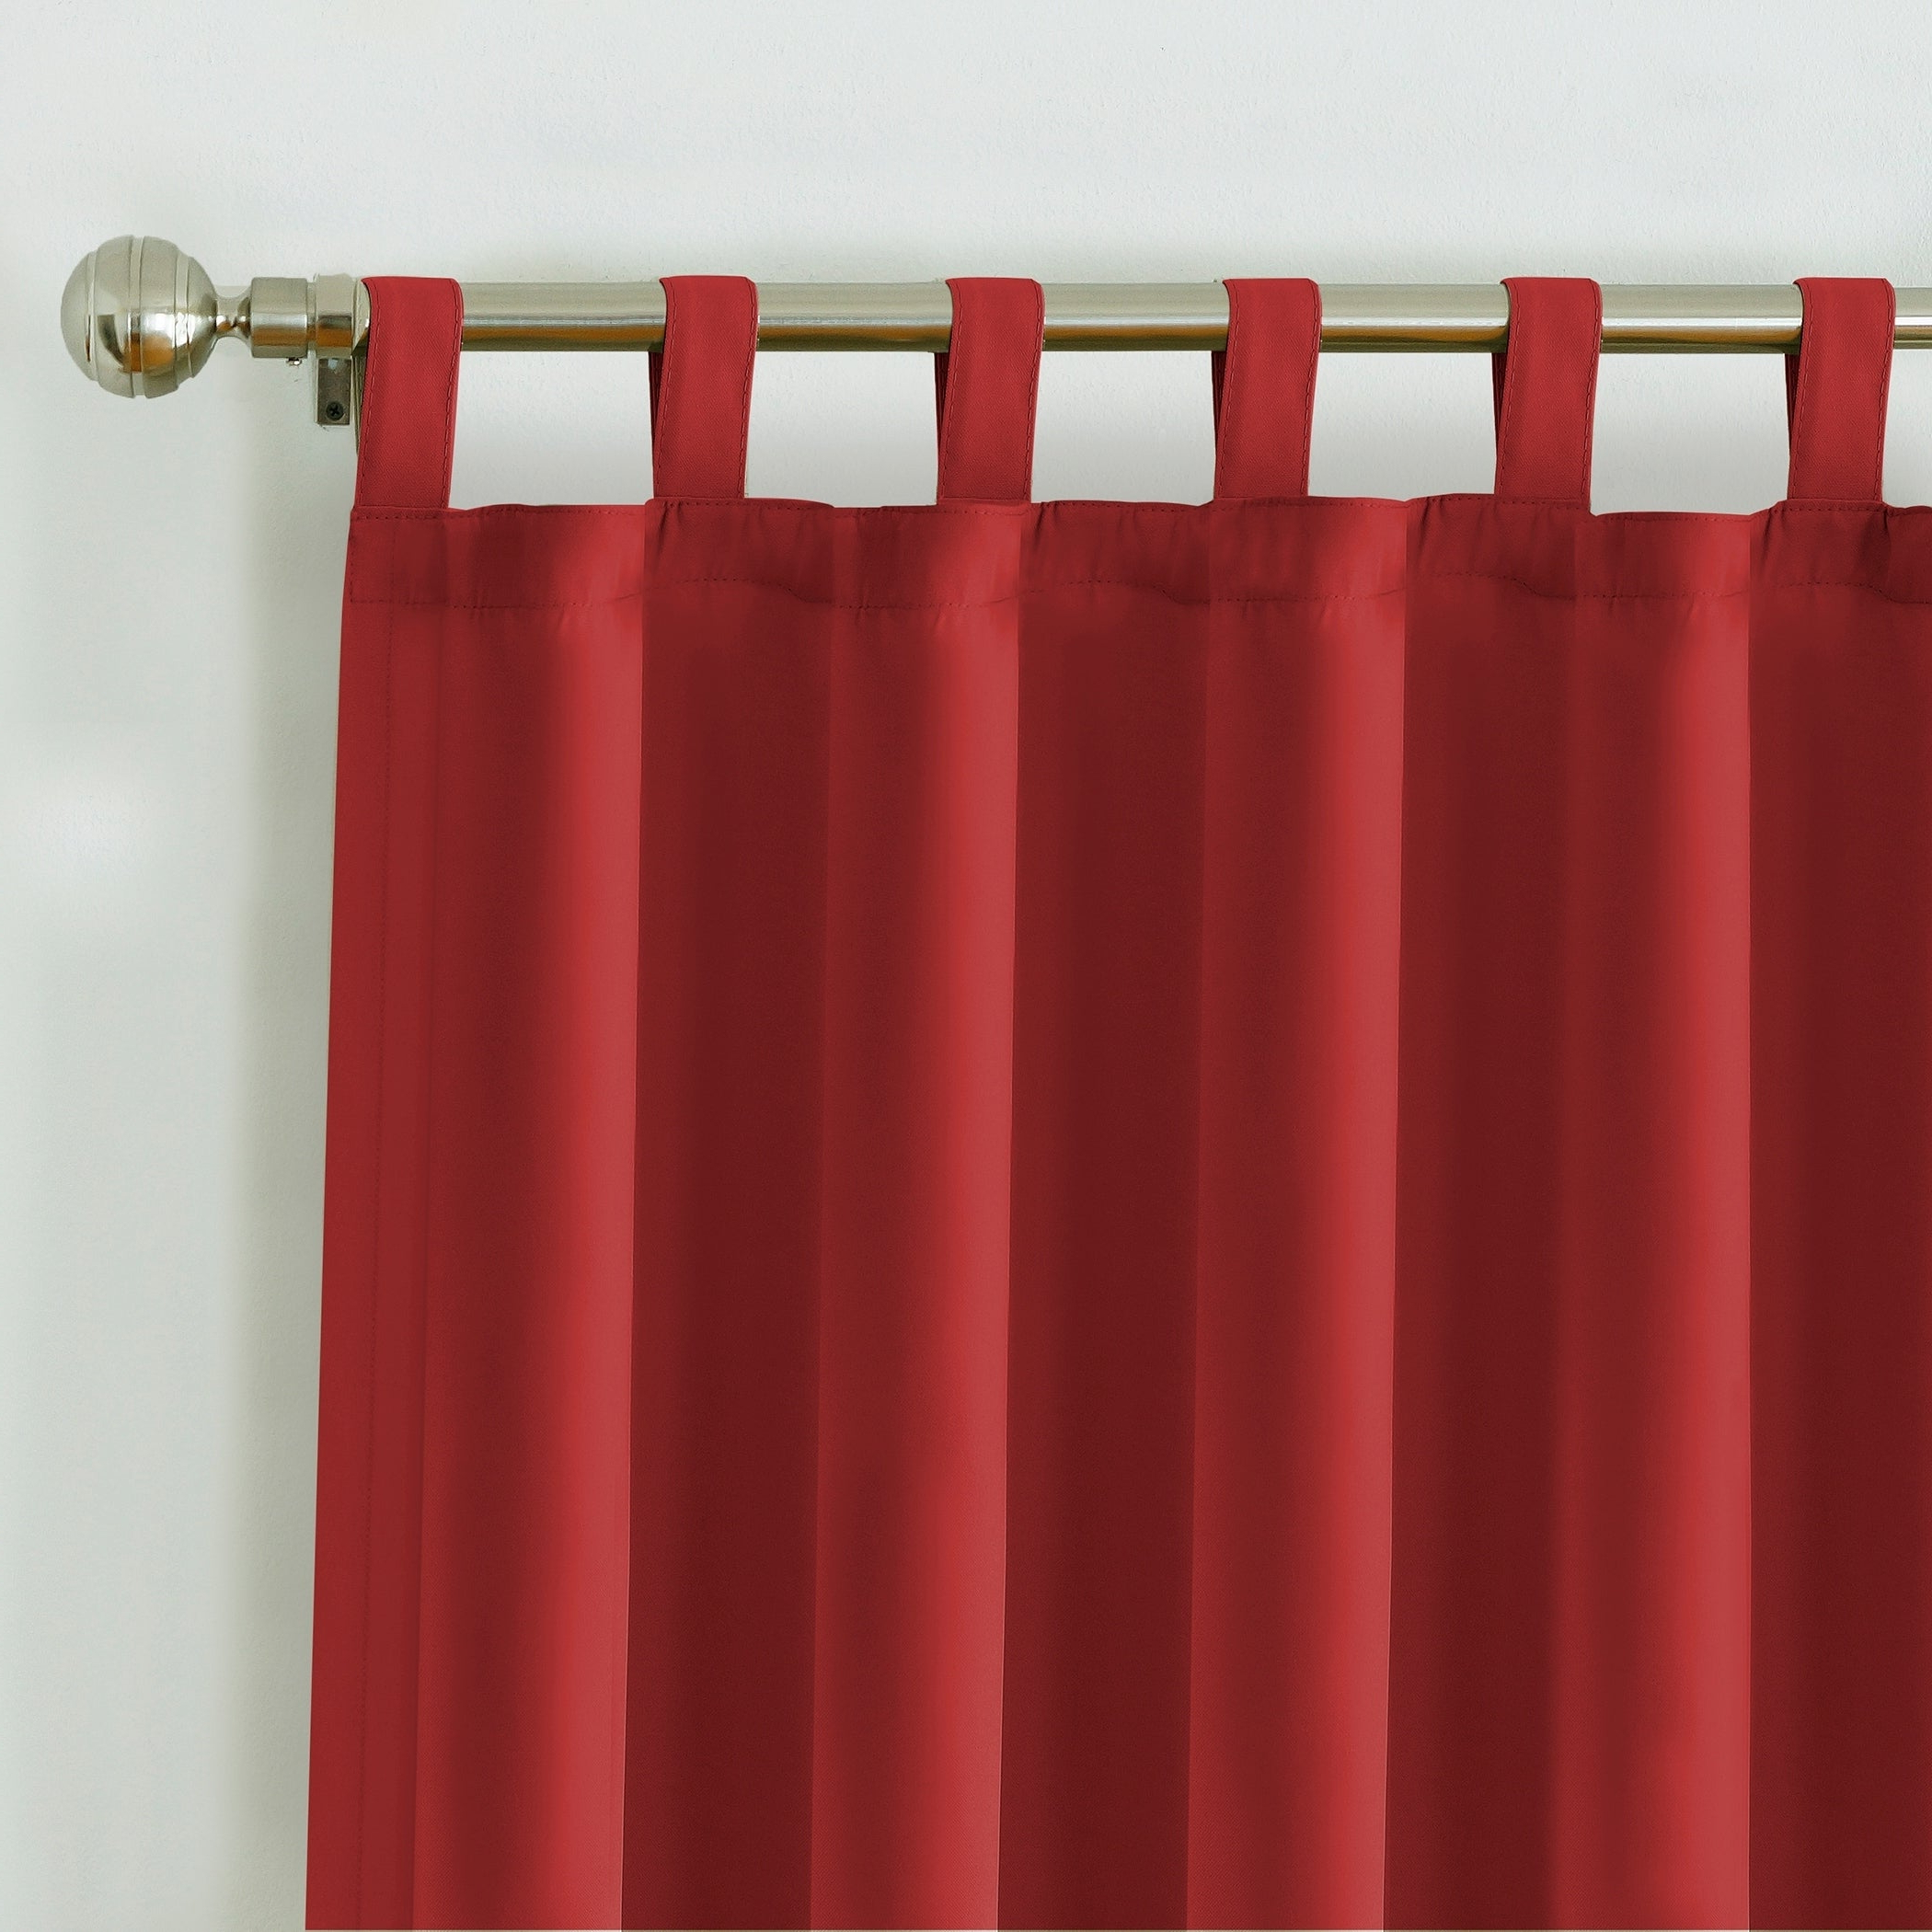 Matine Indoor/outdoor Curtain Panel With Regard To Preferred Matine Indoor/outdoor Curtain Panels (View 7 of 20)